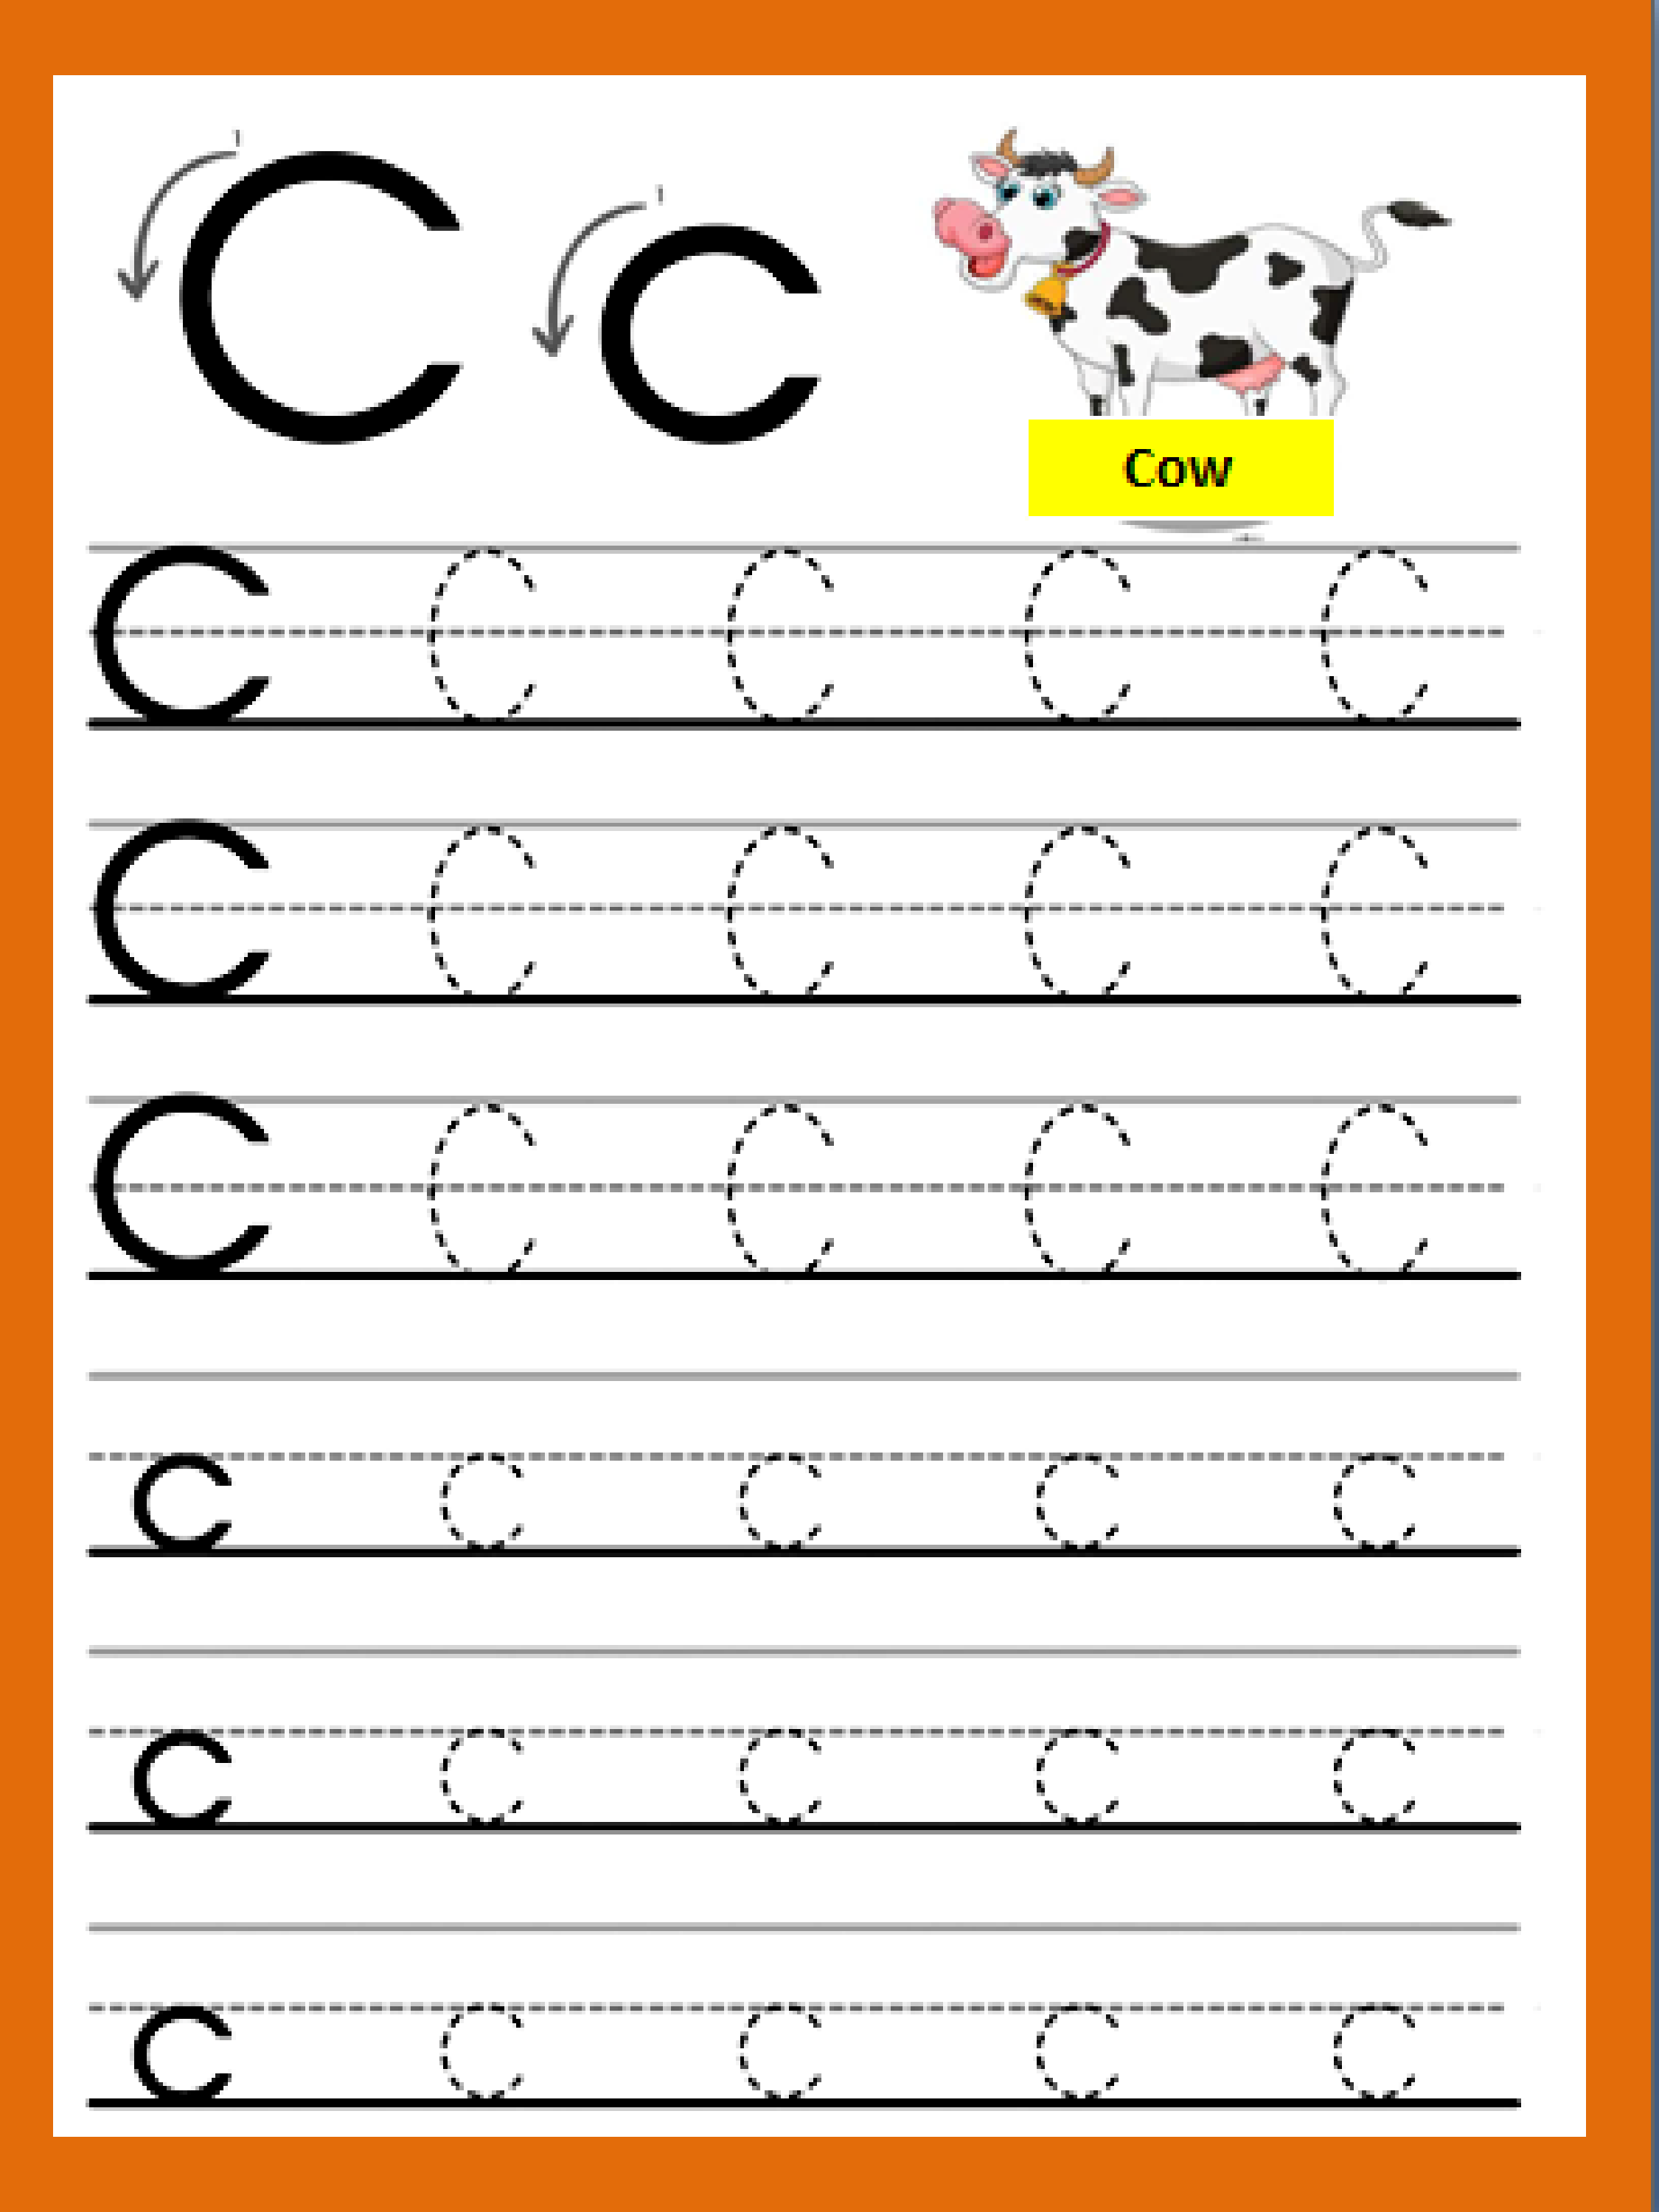 Letter Cc In 2021 Handwriting Worksheets For Kids Word Family Worksheets Lettering [ 3000 x 2250 Pixel ]